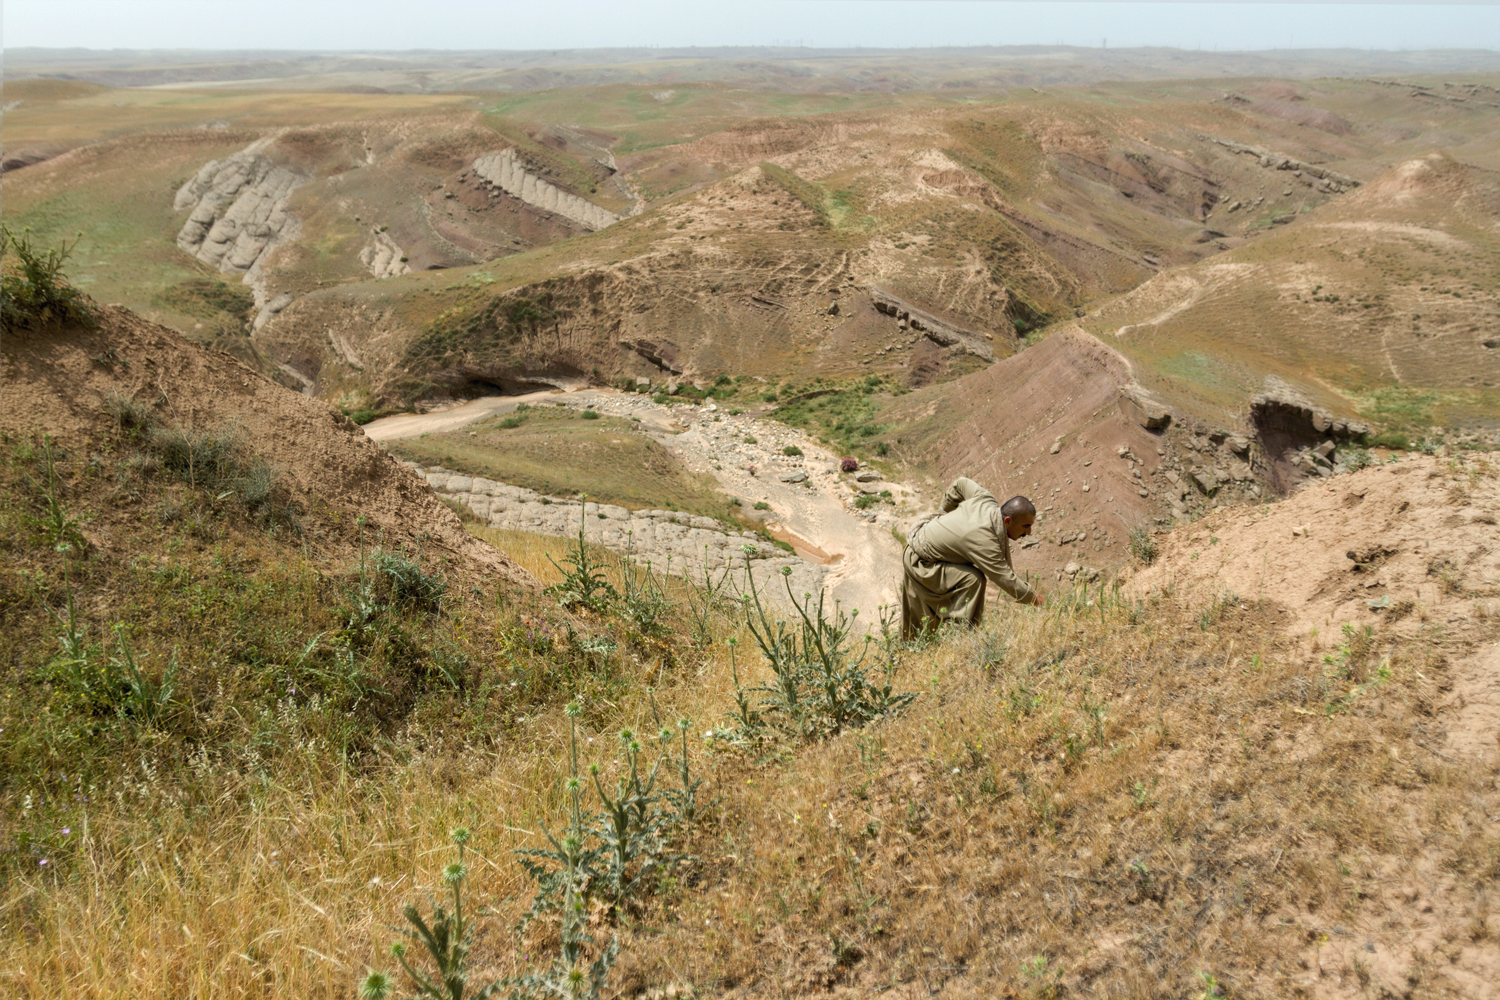 Jarmo, a neolithic farming site in northern Iraq's foothills, is believed to be one of the world's earliest farming villages. Archaeologists have found evidence of domesticated wheat and seed storage that date from around 8,000 B.C. Today, whether by genetic modification or by law, farmers cannot save seeds from many crops.